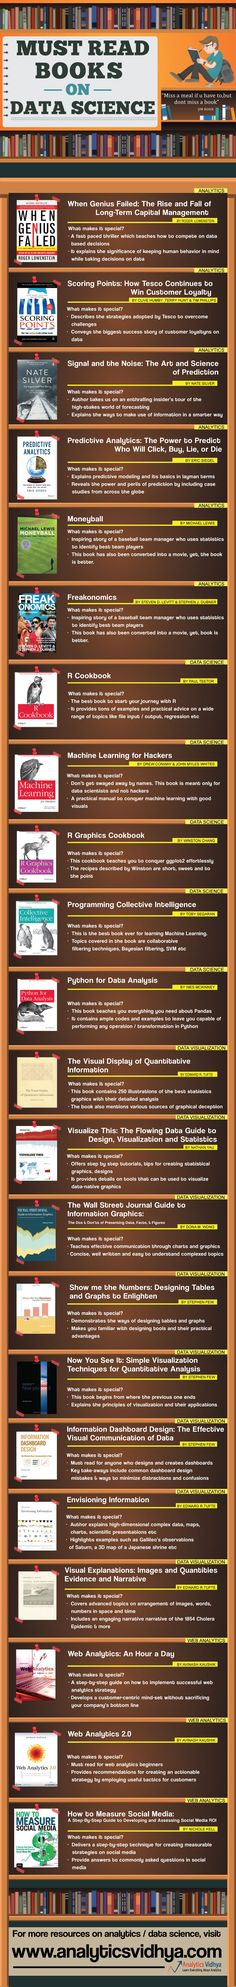 must read books in analytics / data science